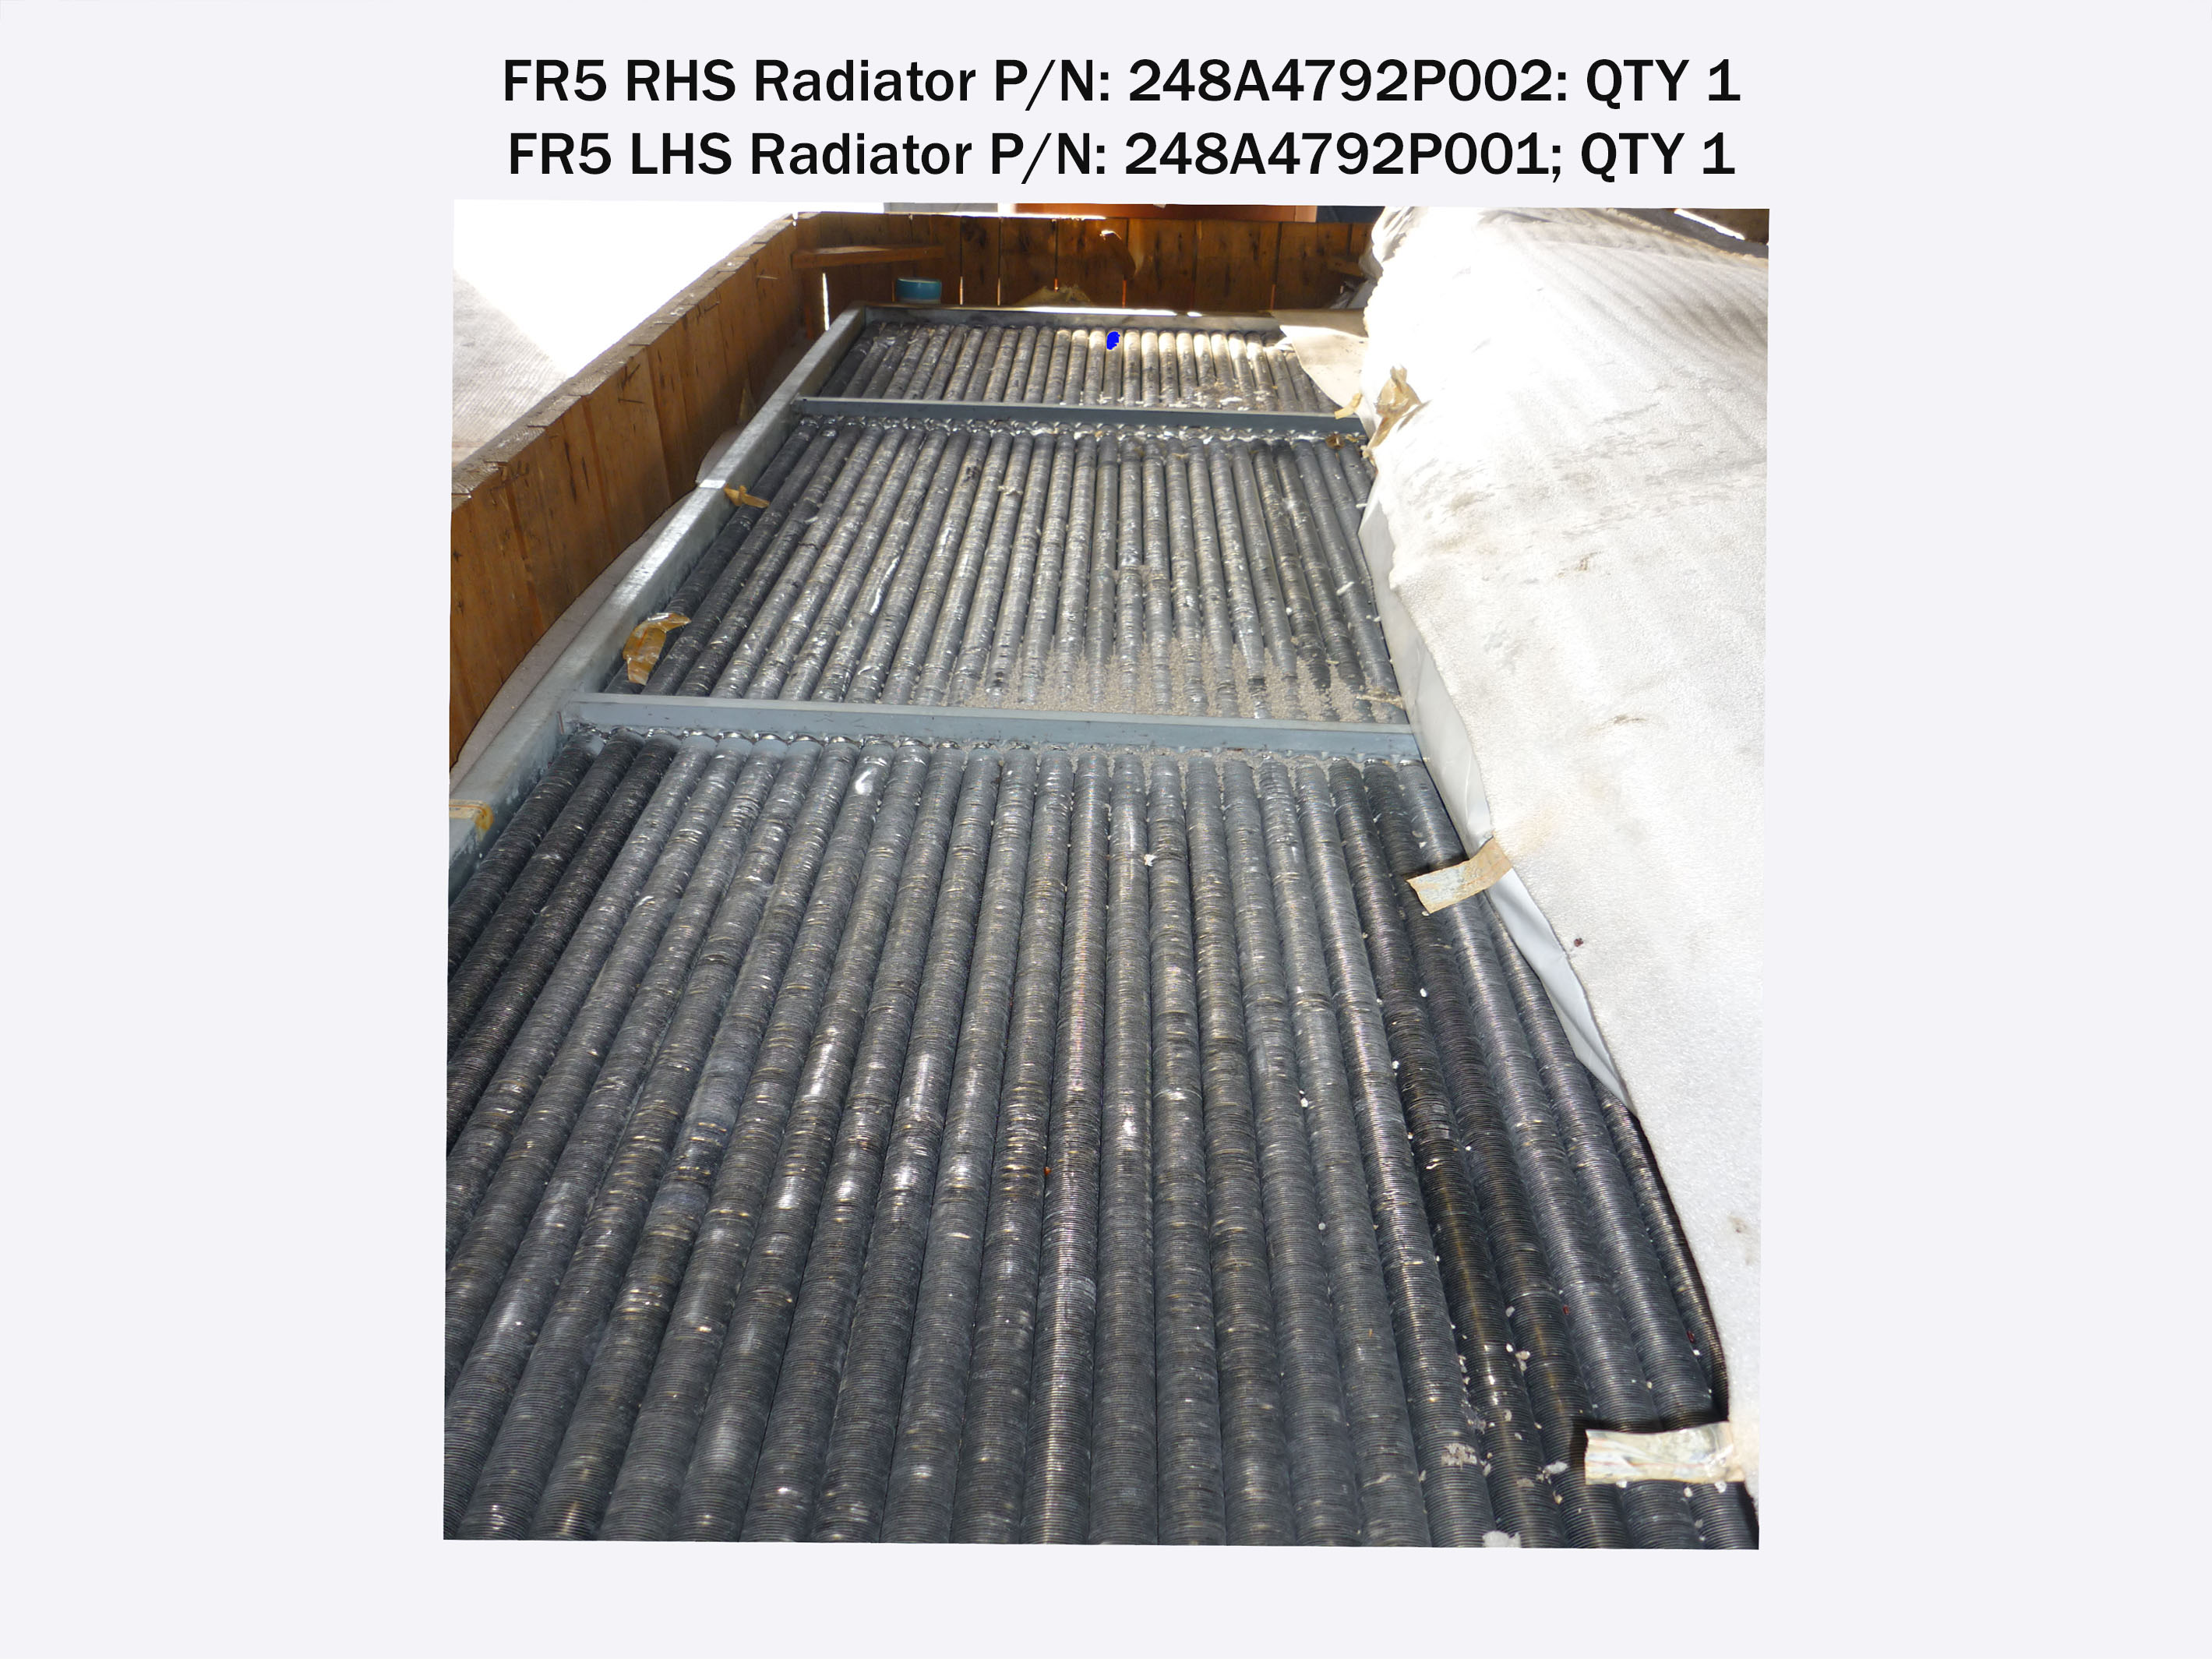 Radiator for FR5P (MS5001P) QTY 2